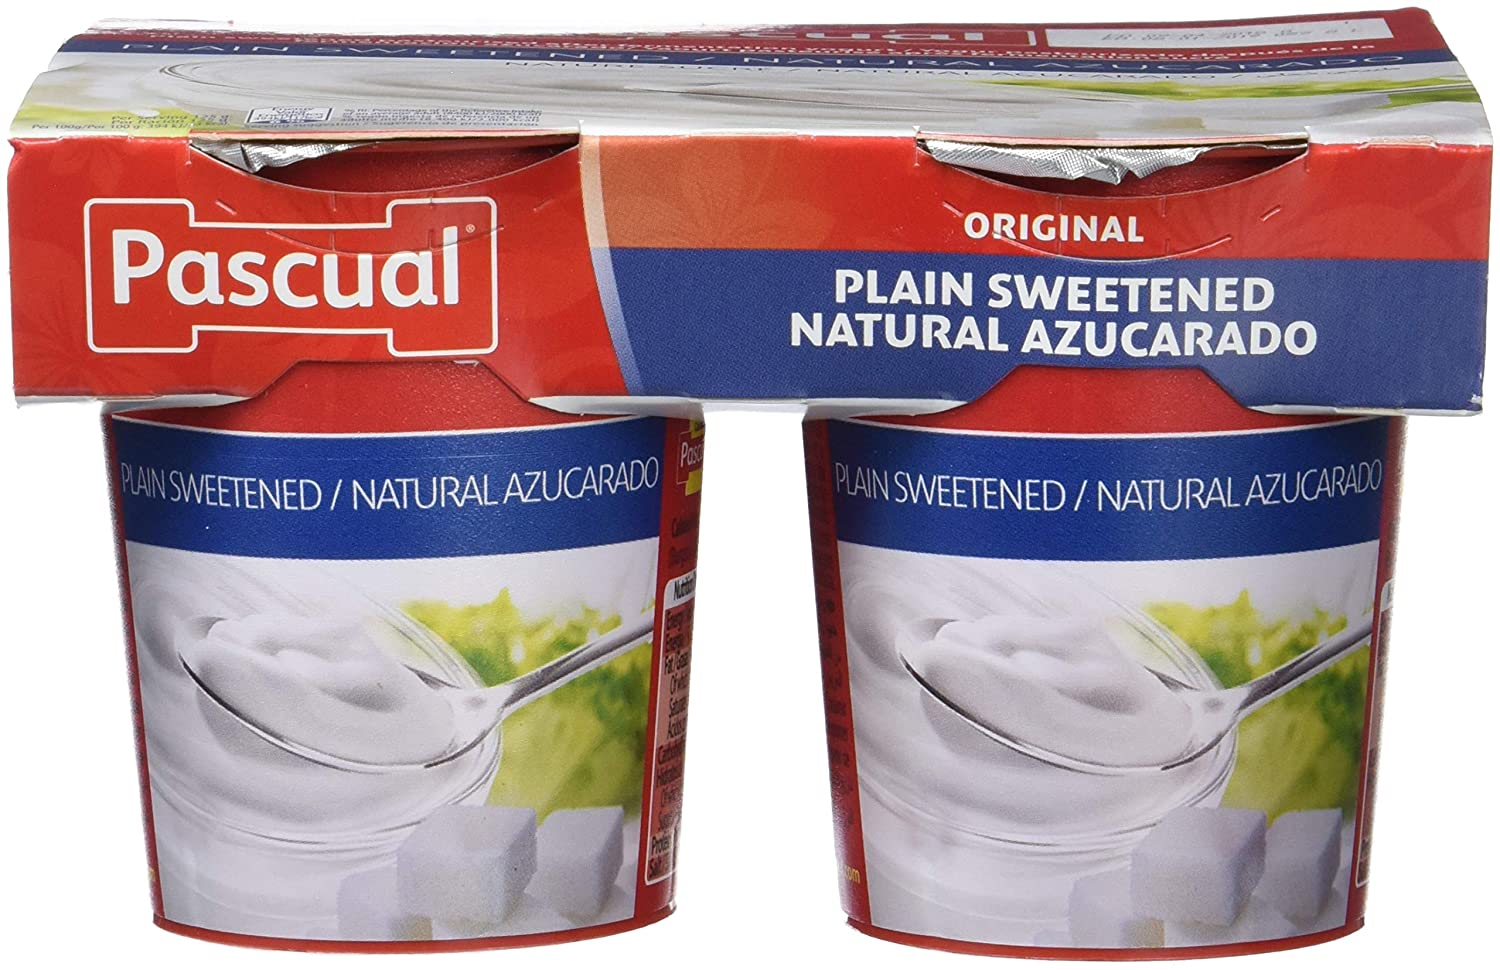 Pascual Yogur Natural Azucarado - Paquete de 4 x 125 gr - Total: 500 gr: Amazon.es: Amazon Pantry